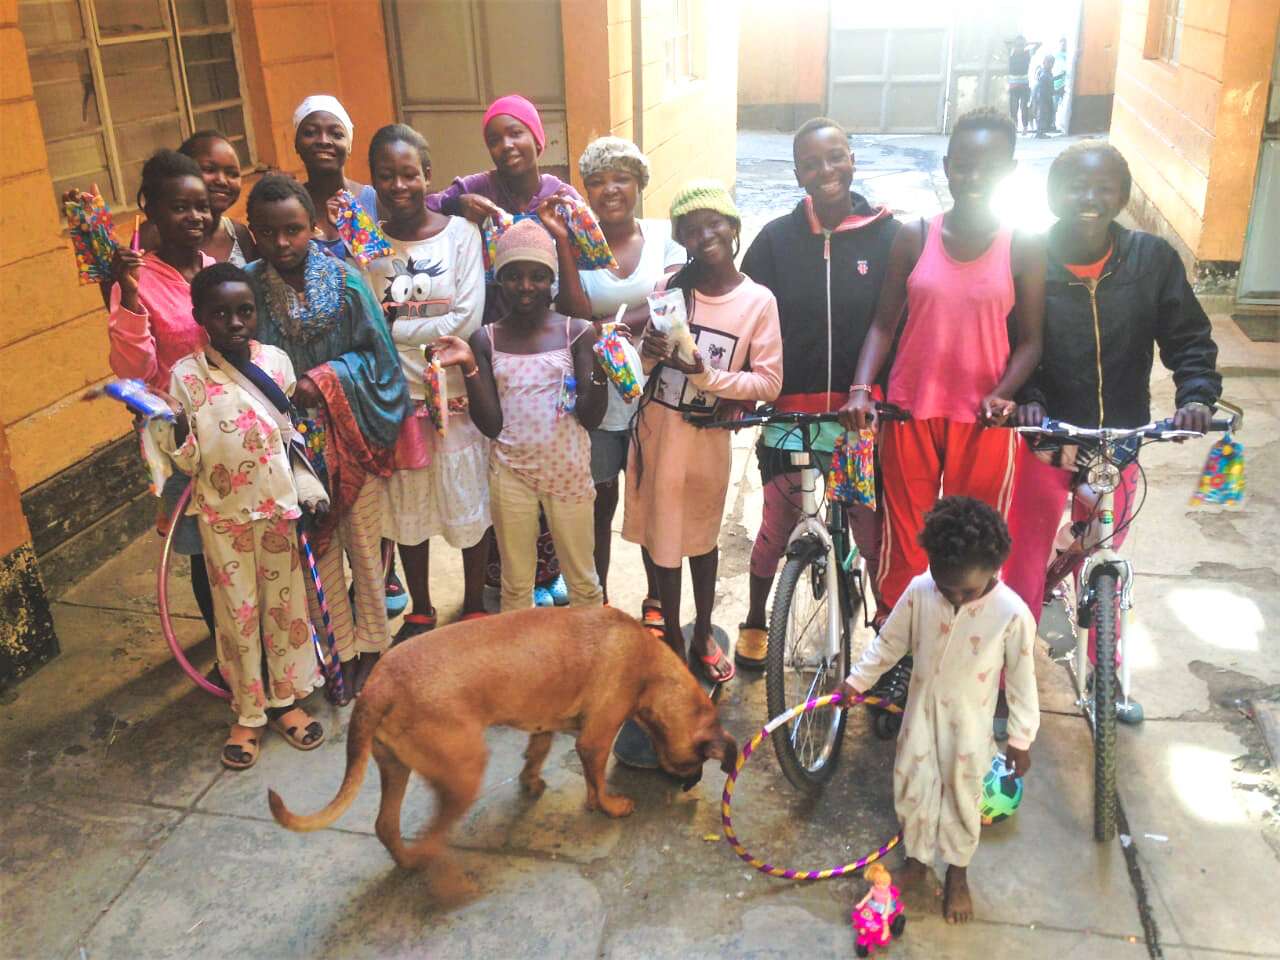 CHRISTMAS 2018 - AFTER OPENING THEIR GIFTS & EATING A CHRISTMAS MEAL - SPONSORED BY OUR GENEROUS DONORS